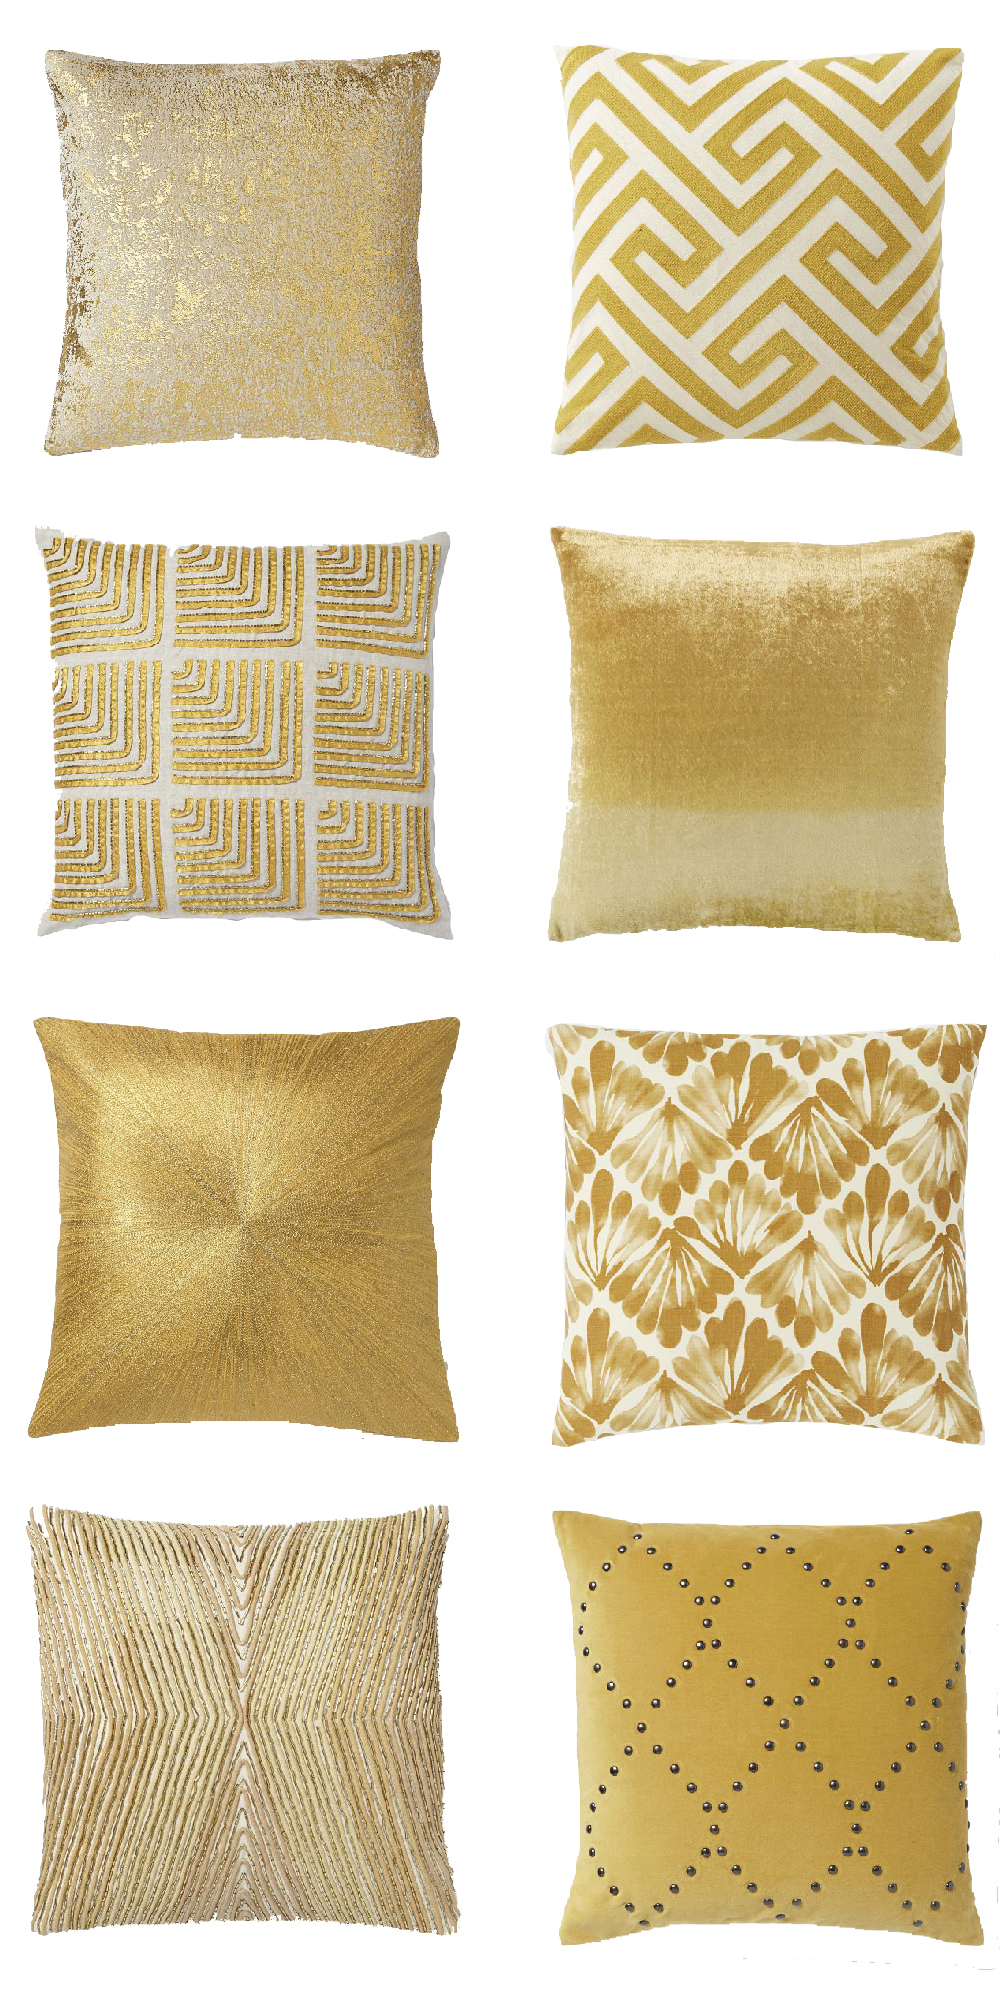 Pillows 24x24 | Gold Throw Pillows | Coral Pillow Covers